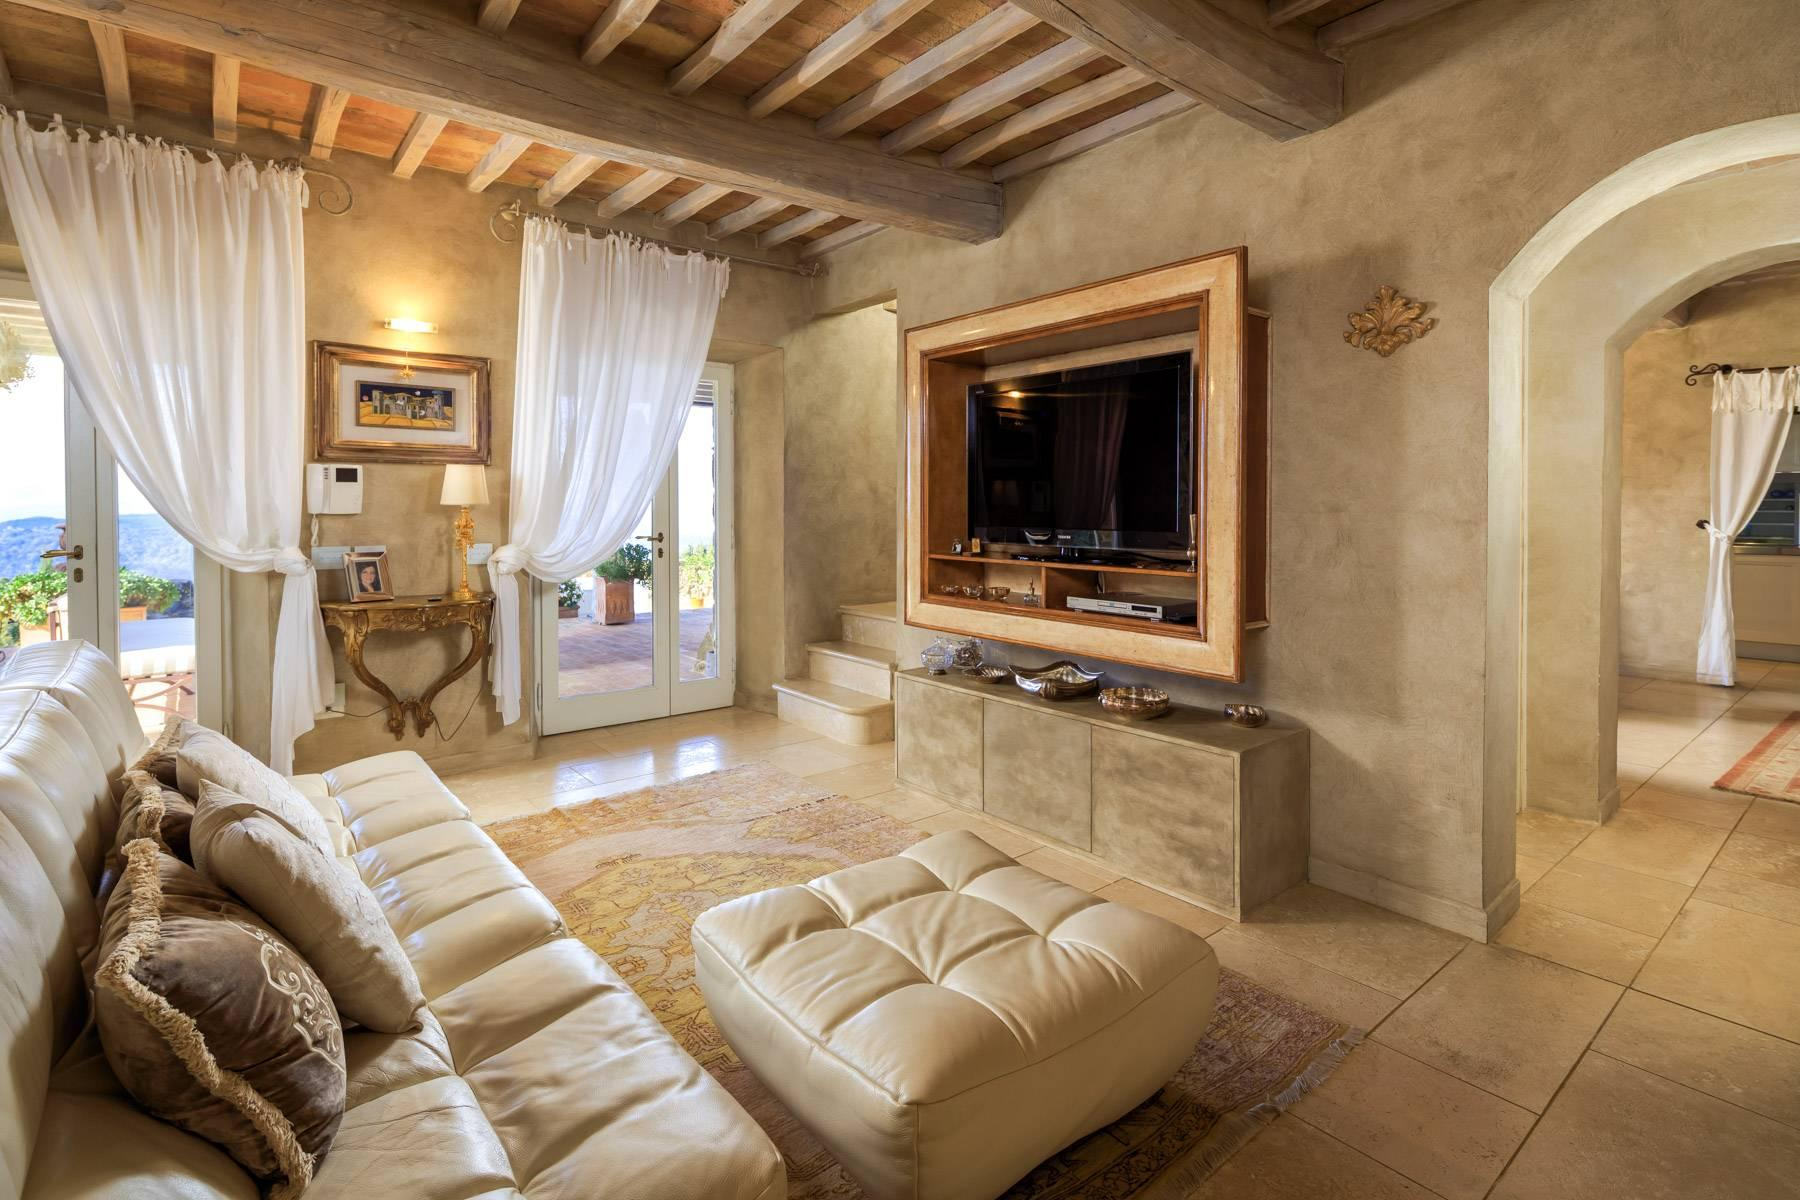 Marvelous newly restored farmhouse close to Montalcino - 17